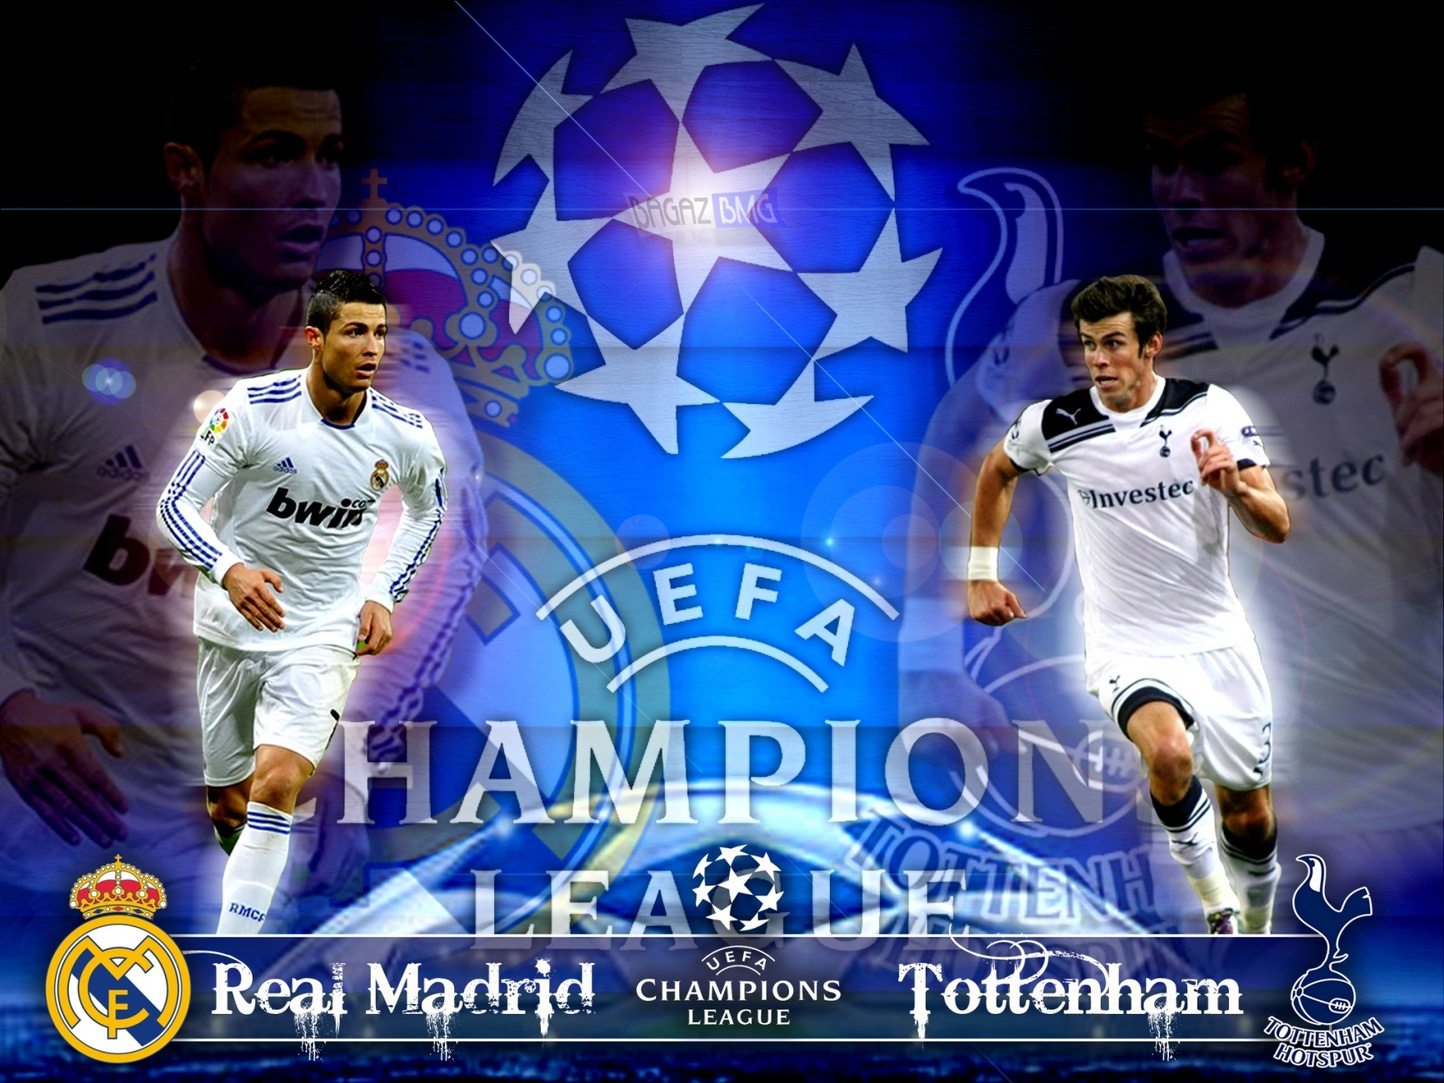 Wallpaper Papel De Parede Do Real Madrid Real Madrid Papel De Parede